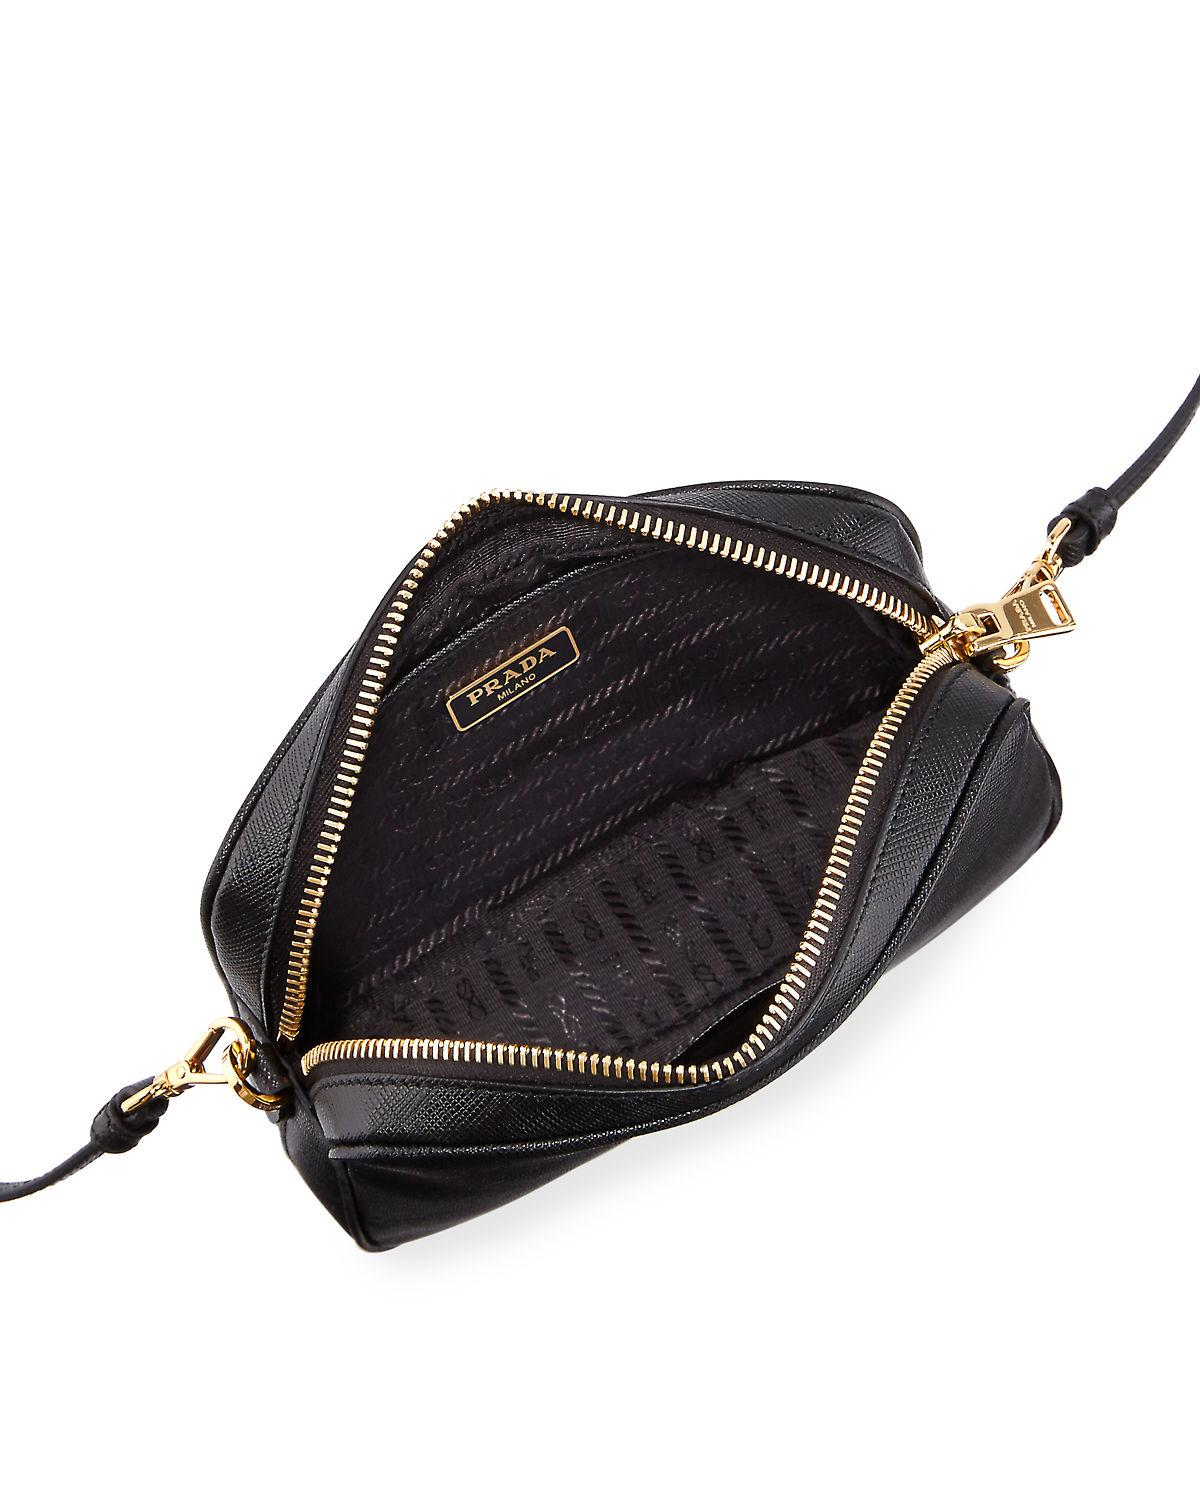 6af63697f0e4 ... inexpensive lyst prada small saffiano leather camera crossbody bag in  black 1ff6d 0107c